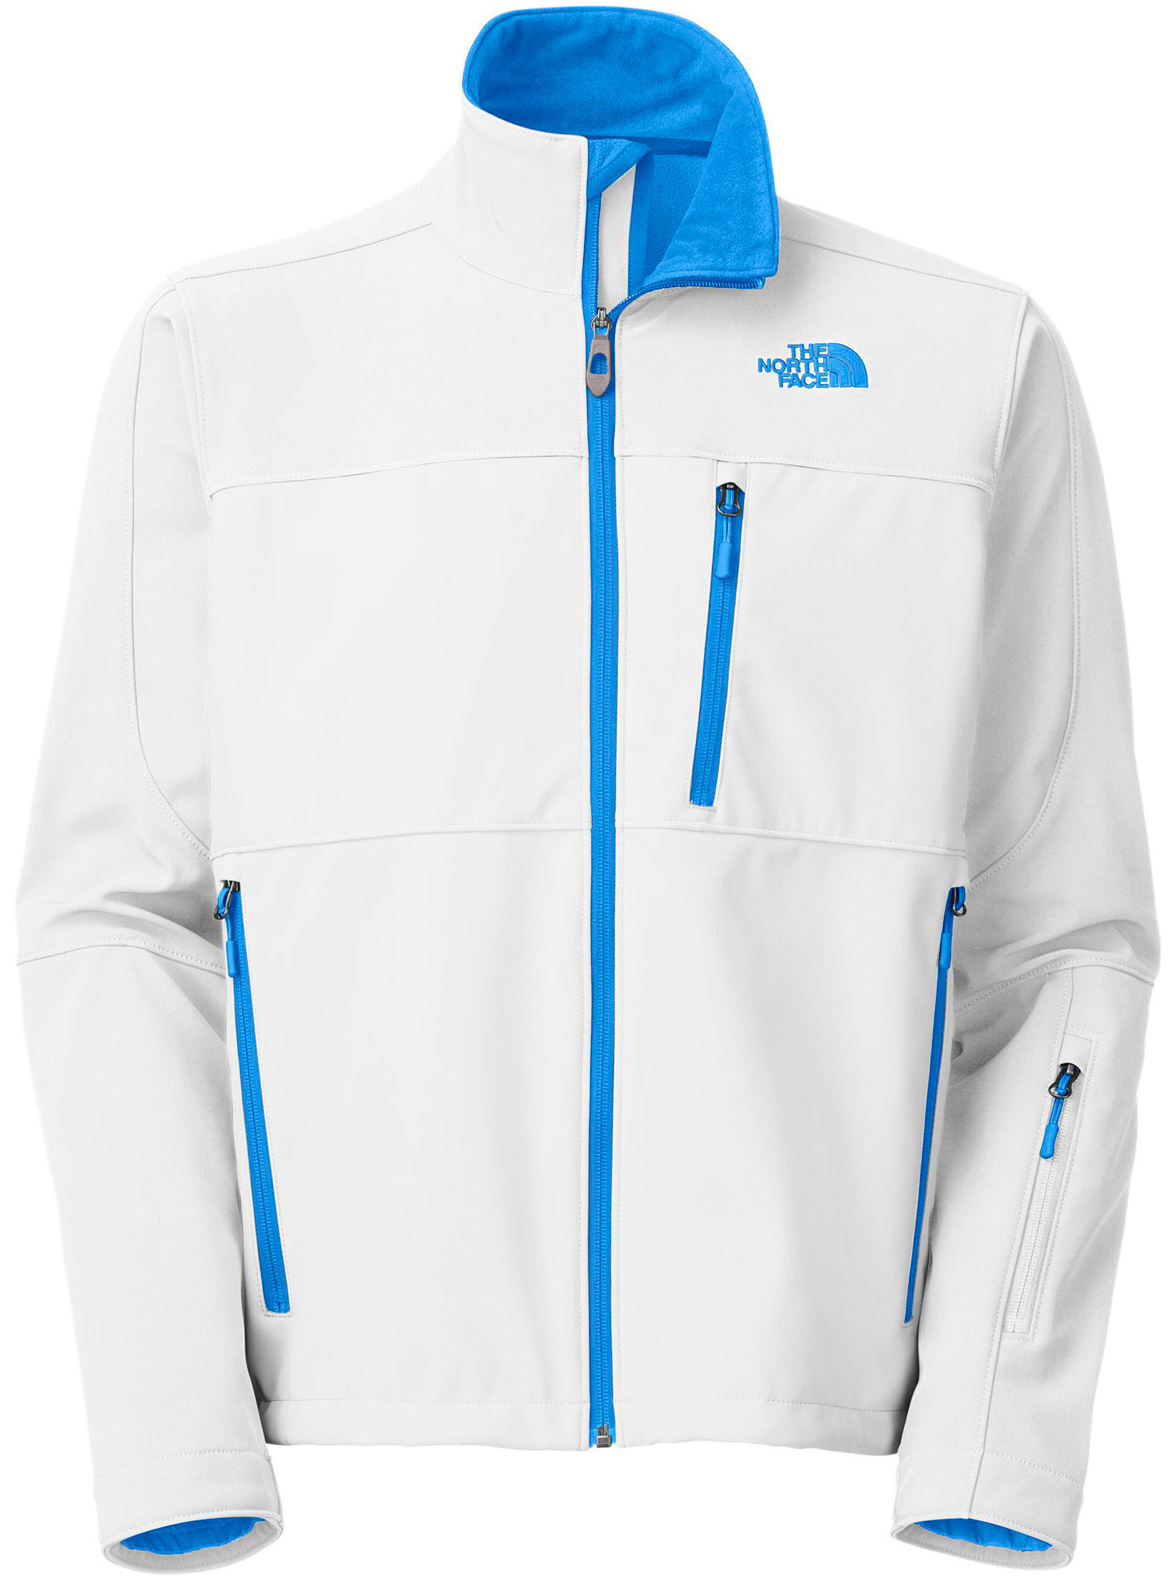 "A streamlined and progressive soft shell that provides maximum breathability and agility on the hill. Key Features of The North Face Palmyra Softshell Jacket: Avg Weight: 770 g (27.16 oz) Center back: 28"" Fabric: 339 g/m2 TNF Apex ClimateBlock with fleece backer;55% polyester, 39% nylon, 6% elastane (bluesign approved fabric) A streamlined and progressive soft shell that provides maximum breathability and agility on the hill. Water-resistant, breathable Zip chest pocket Zip hand pockets Wrist accessory pocket Internal seam zipper Adjustable hem system - $149.95"